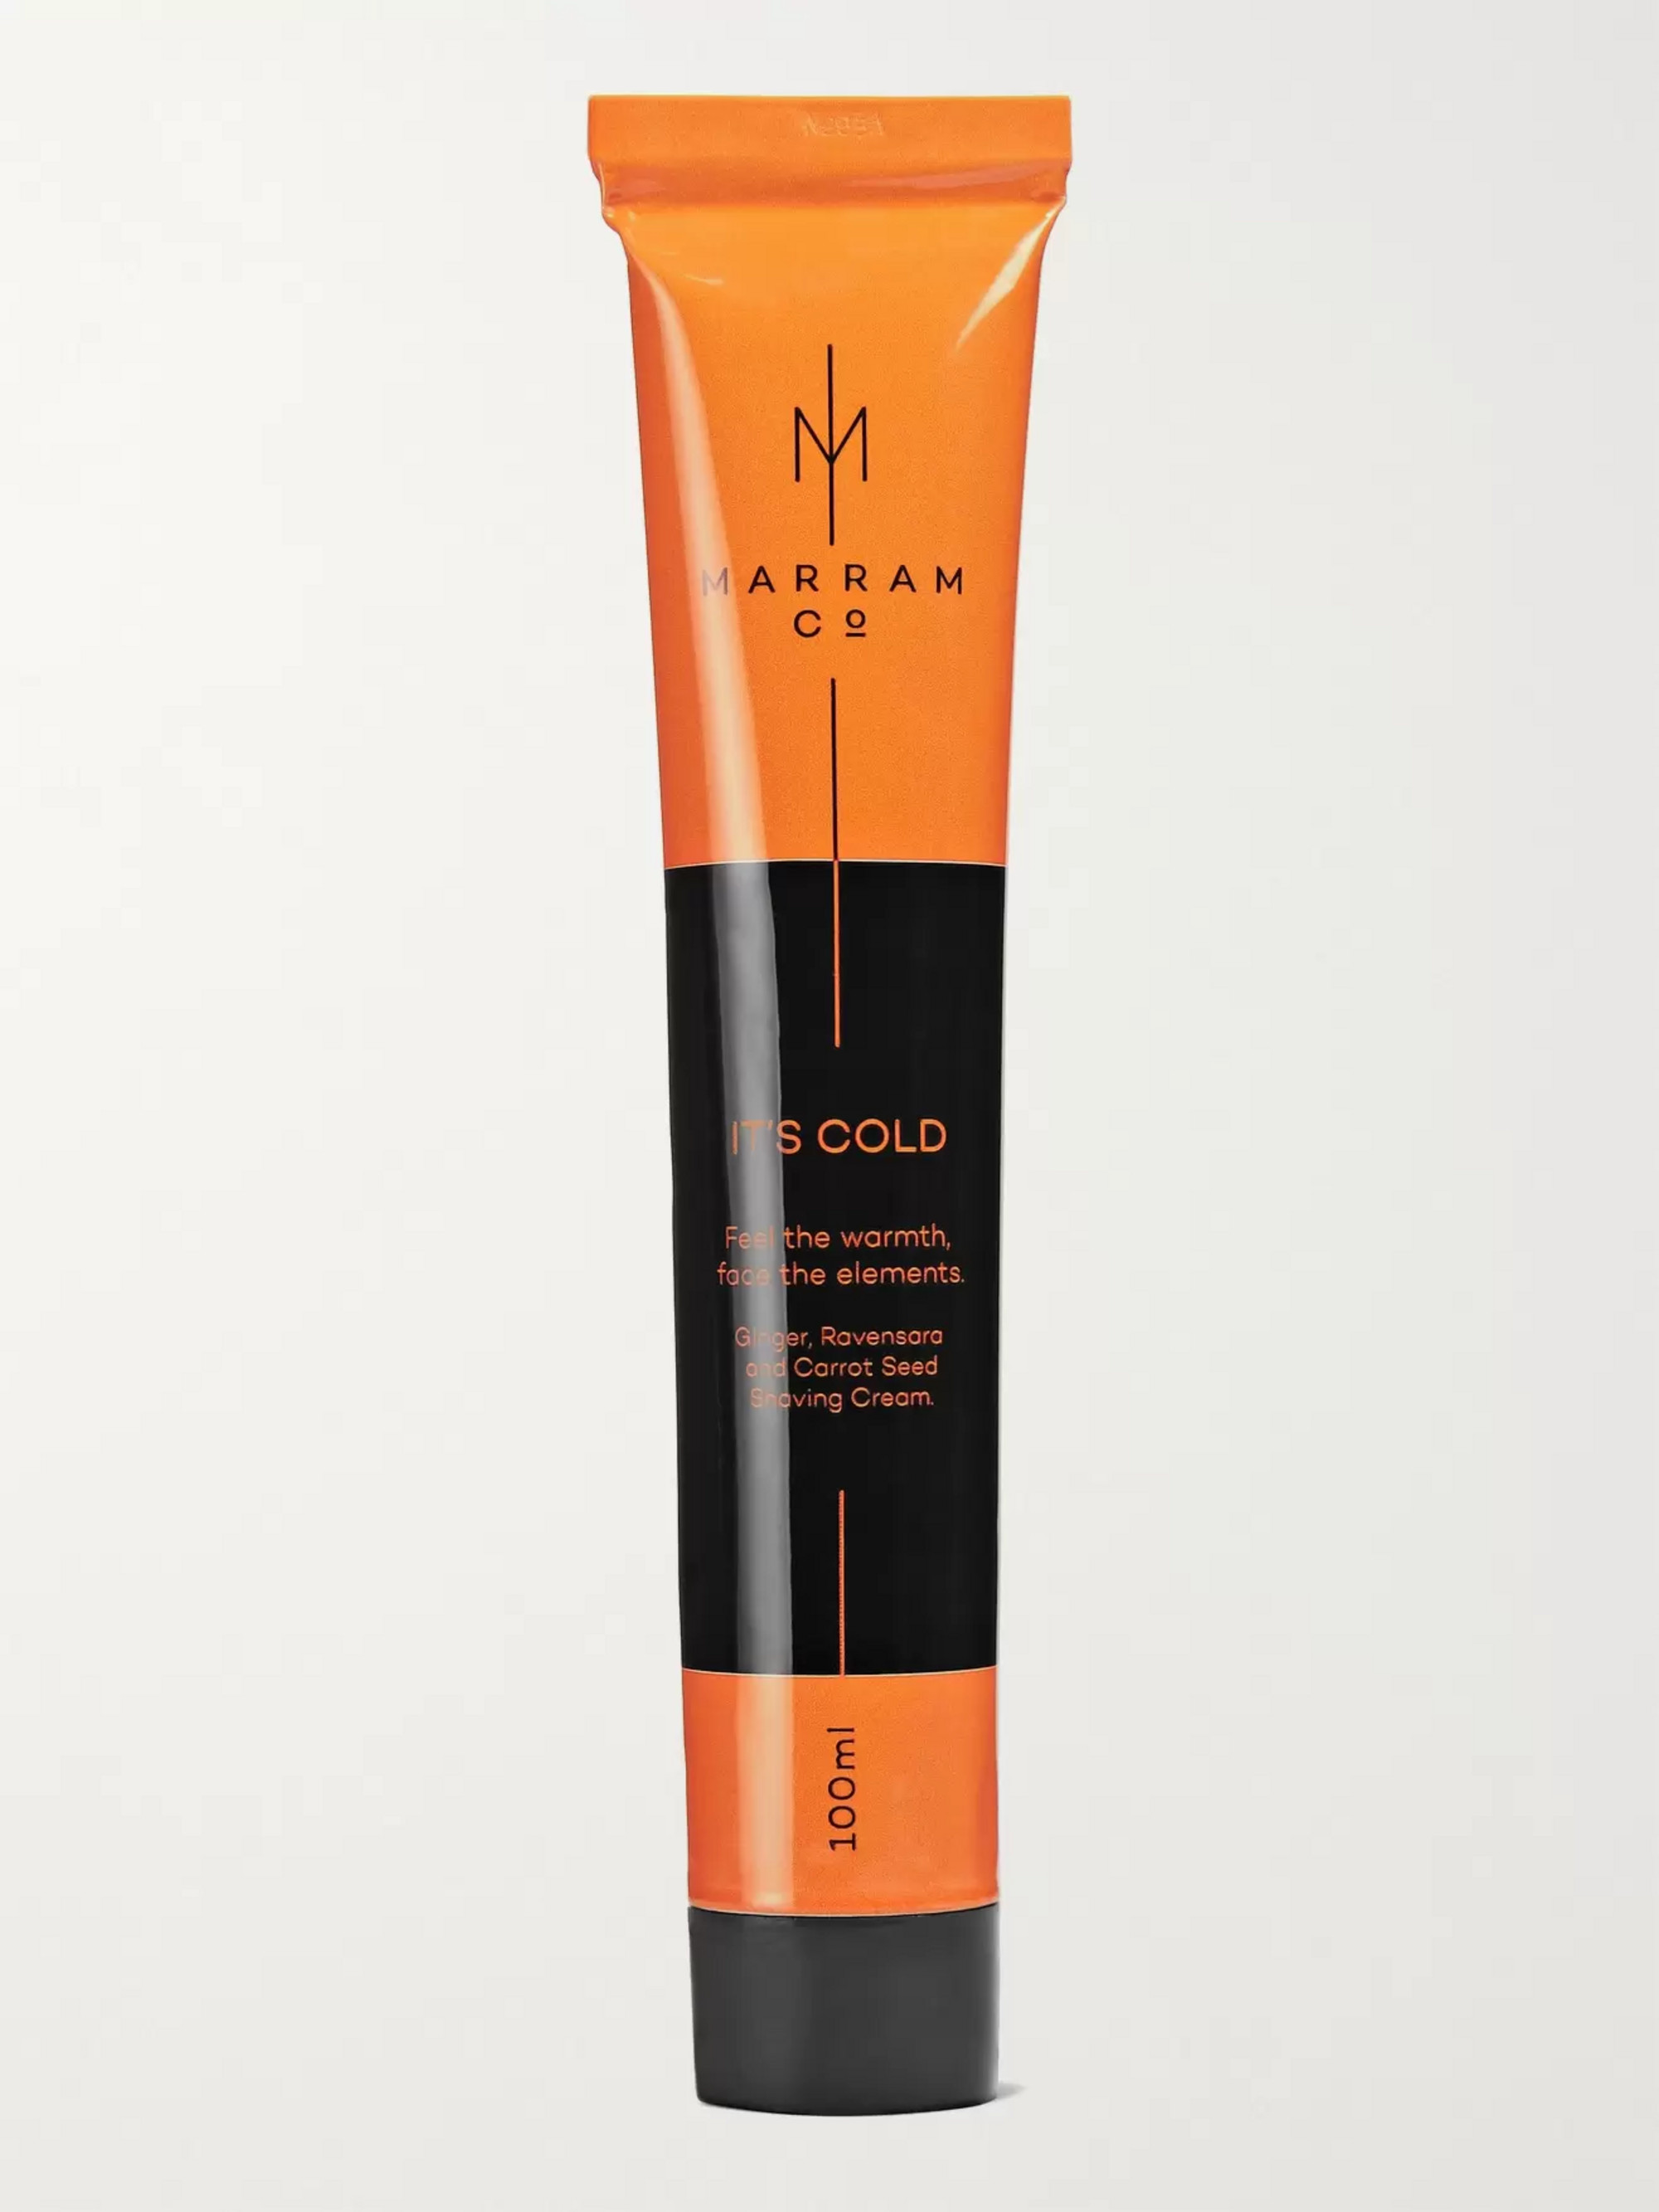 Marram Co It's Cold Shaving Cream, 100ml